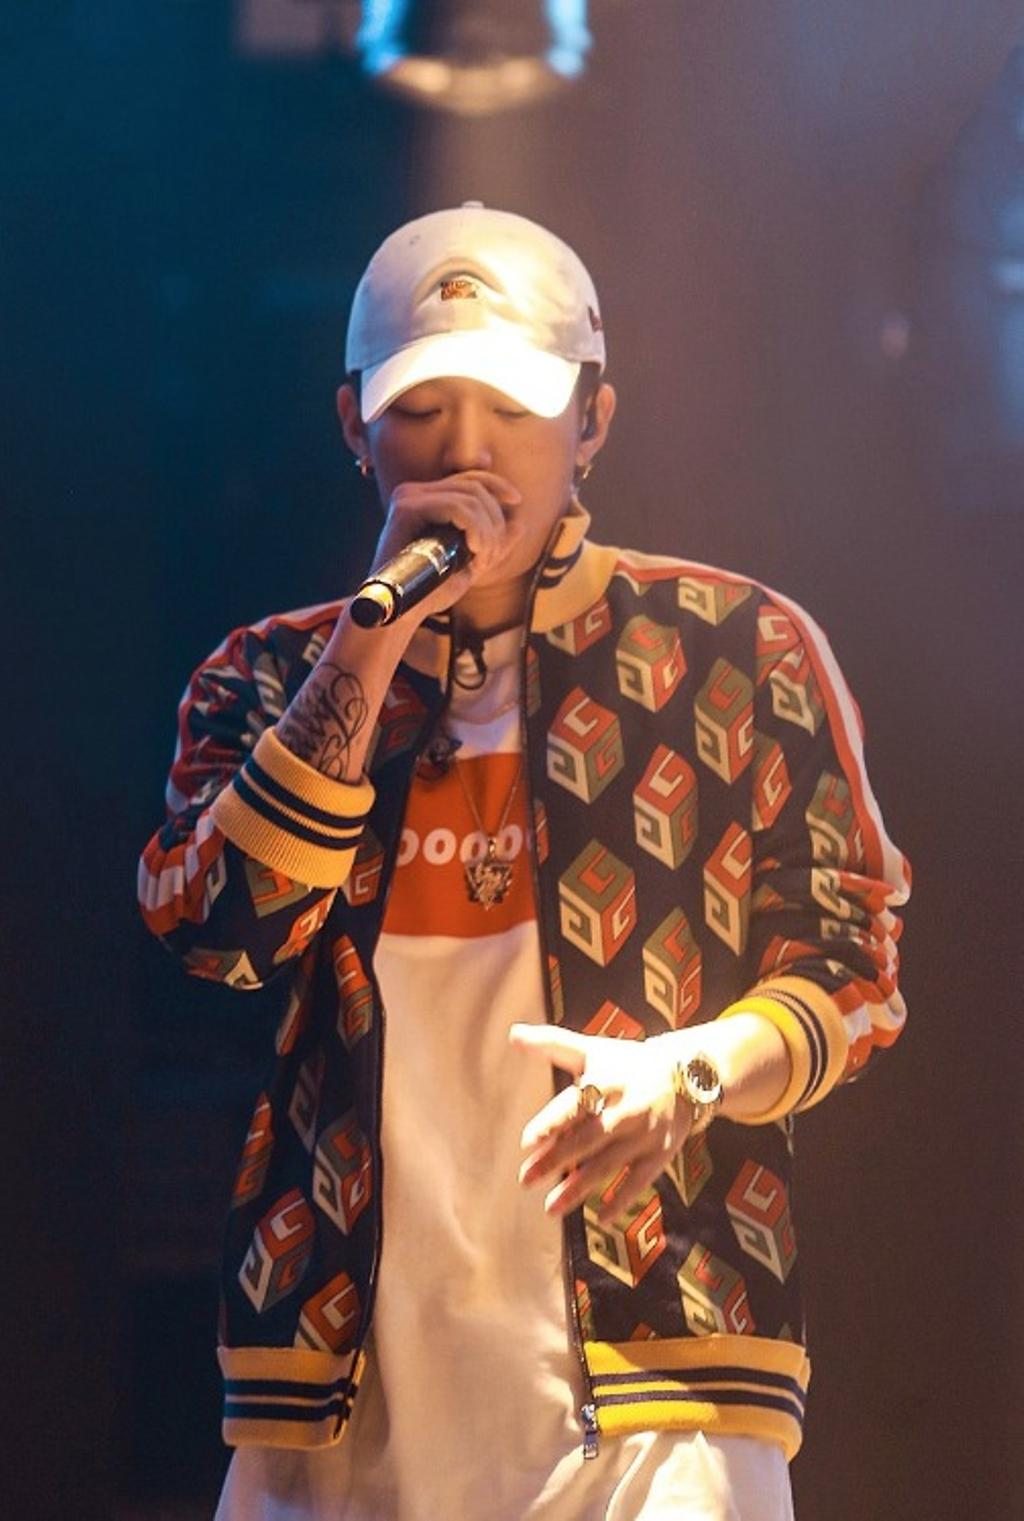 Le rappeur chinois PG One